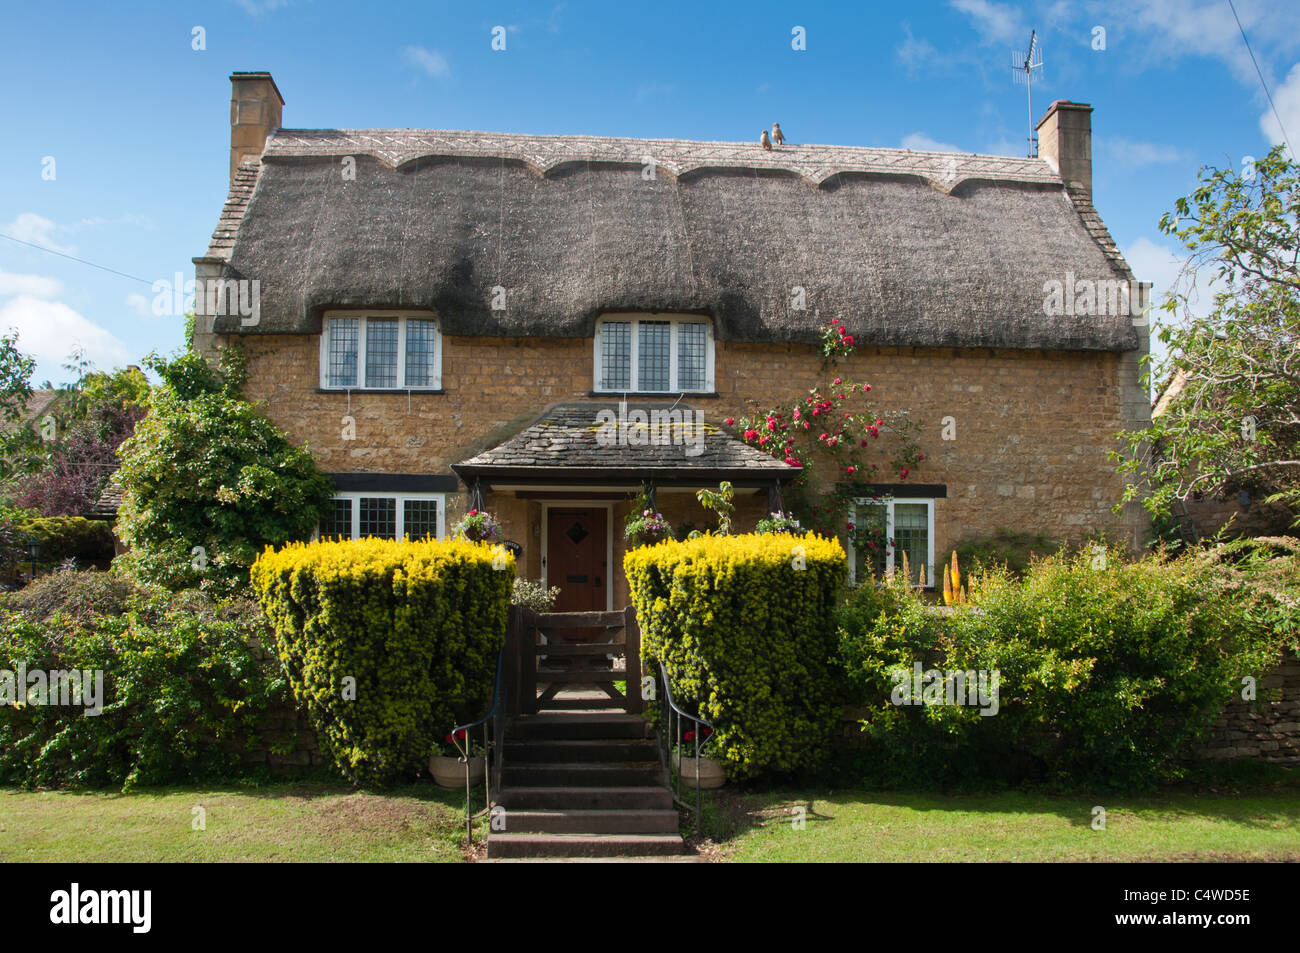 Cotswold thatched cottage in Chipping Campden, Gloucestershire, UK - Stock Image